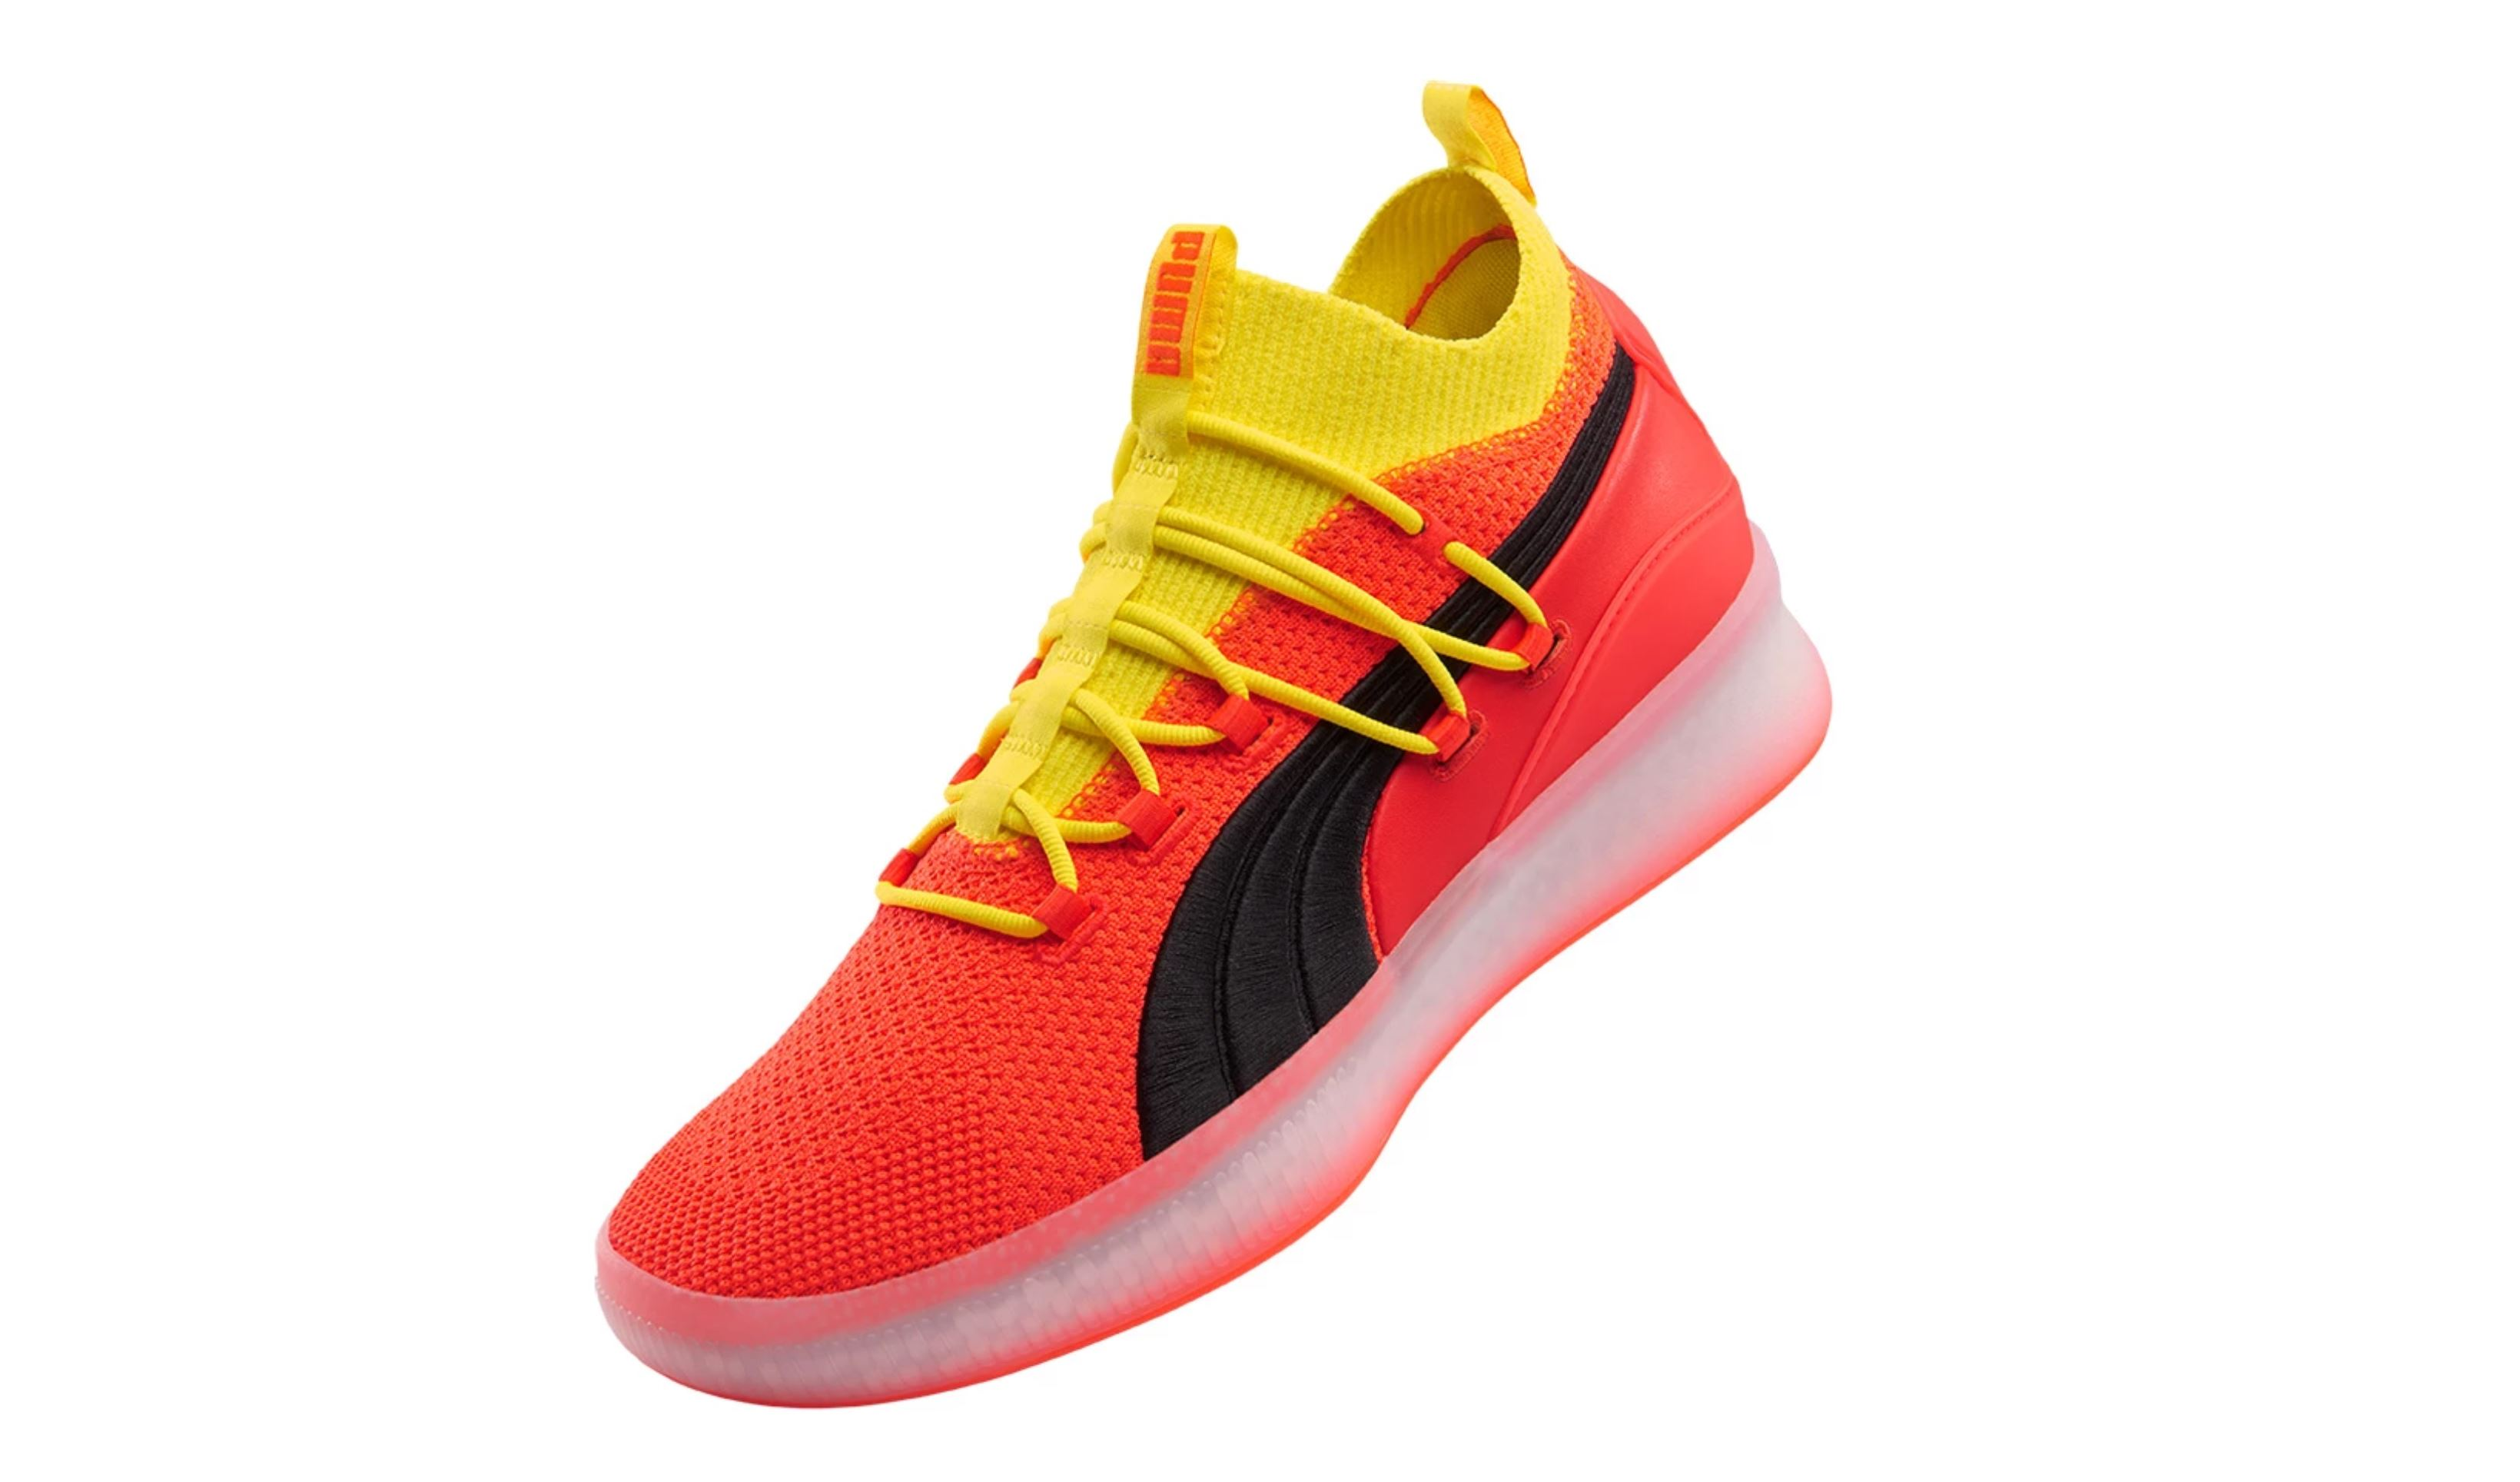 new concept 1a297 986dd Puma Re-enters Basketball Market with the Clyde Court ...